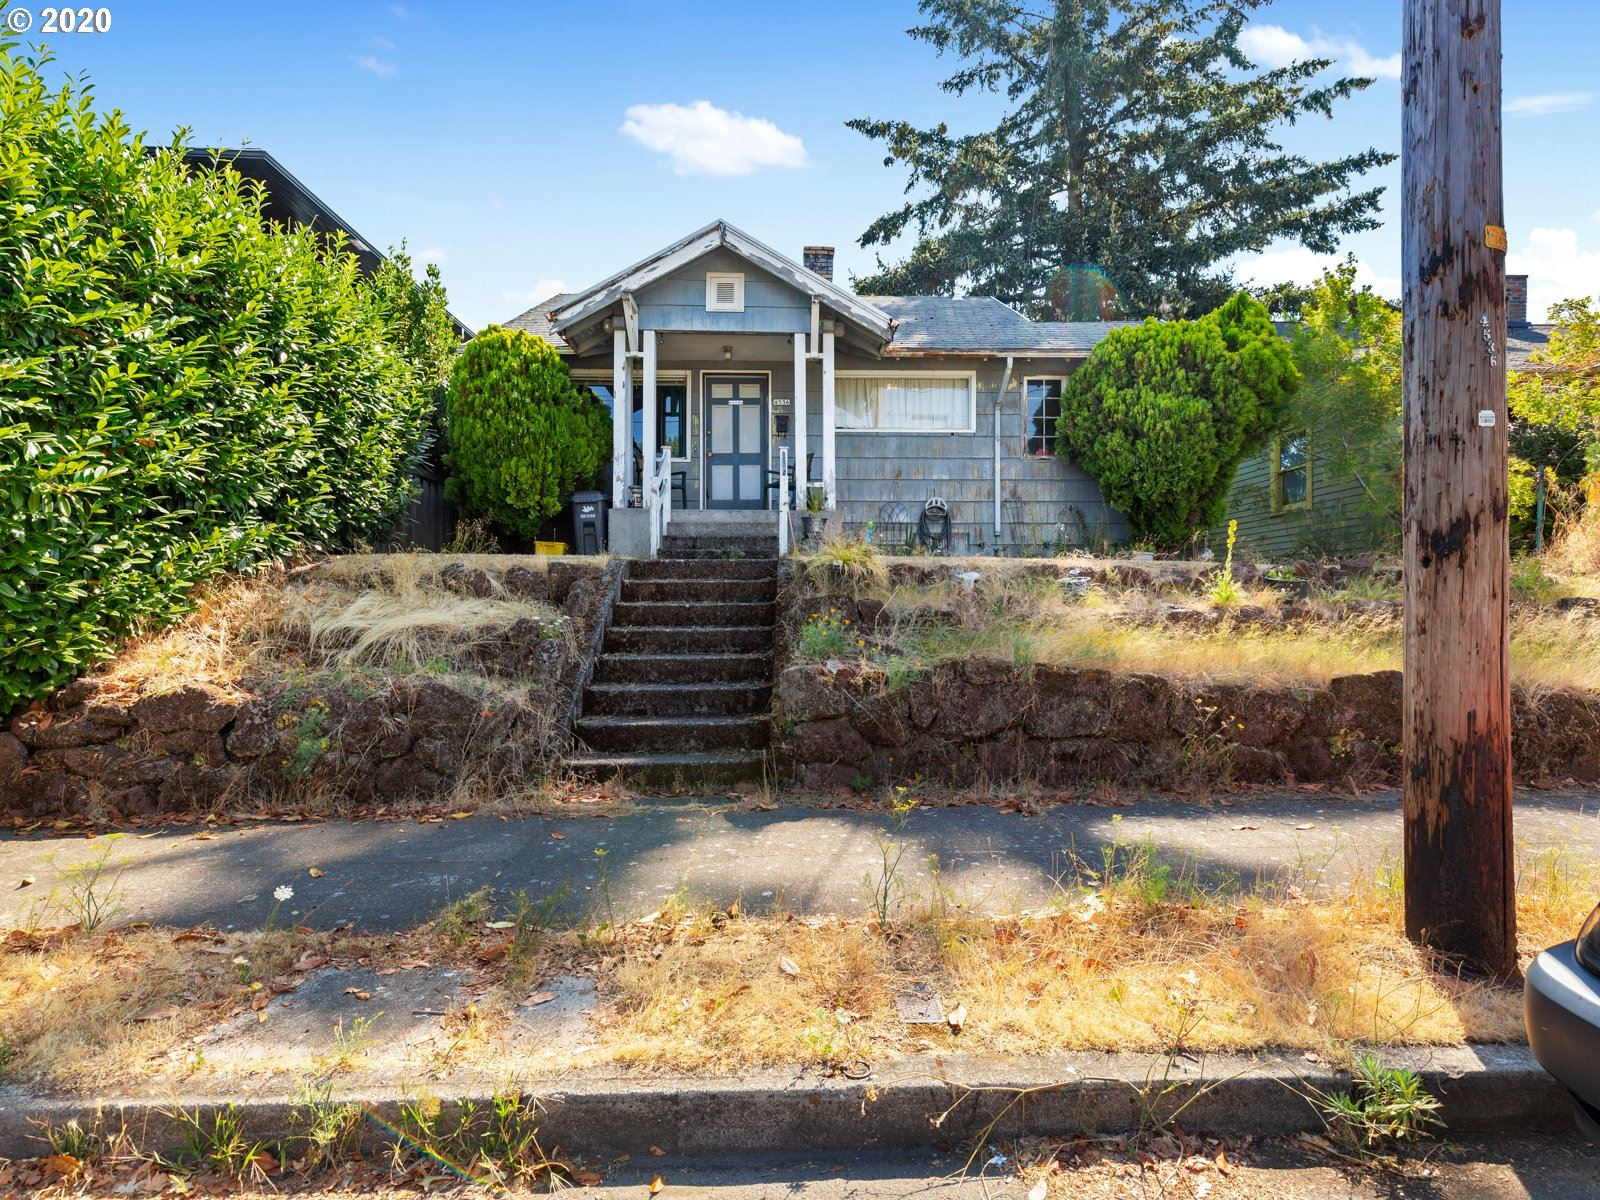 4536 NE 24TH AVE, Portland, OR 97211 - MLS#: 20270907